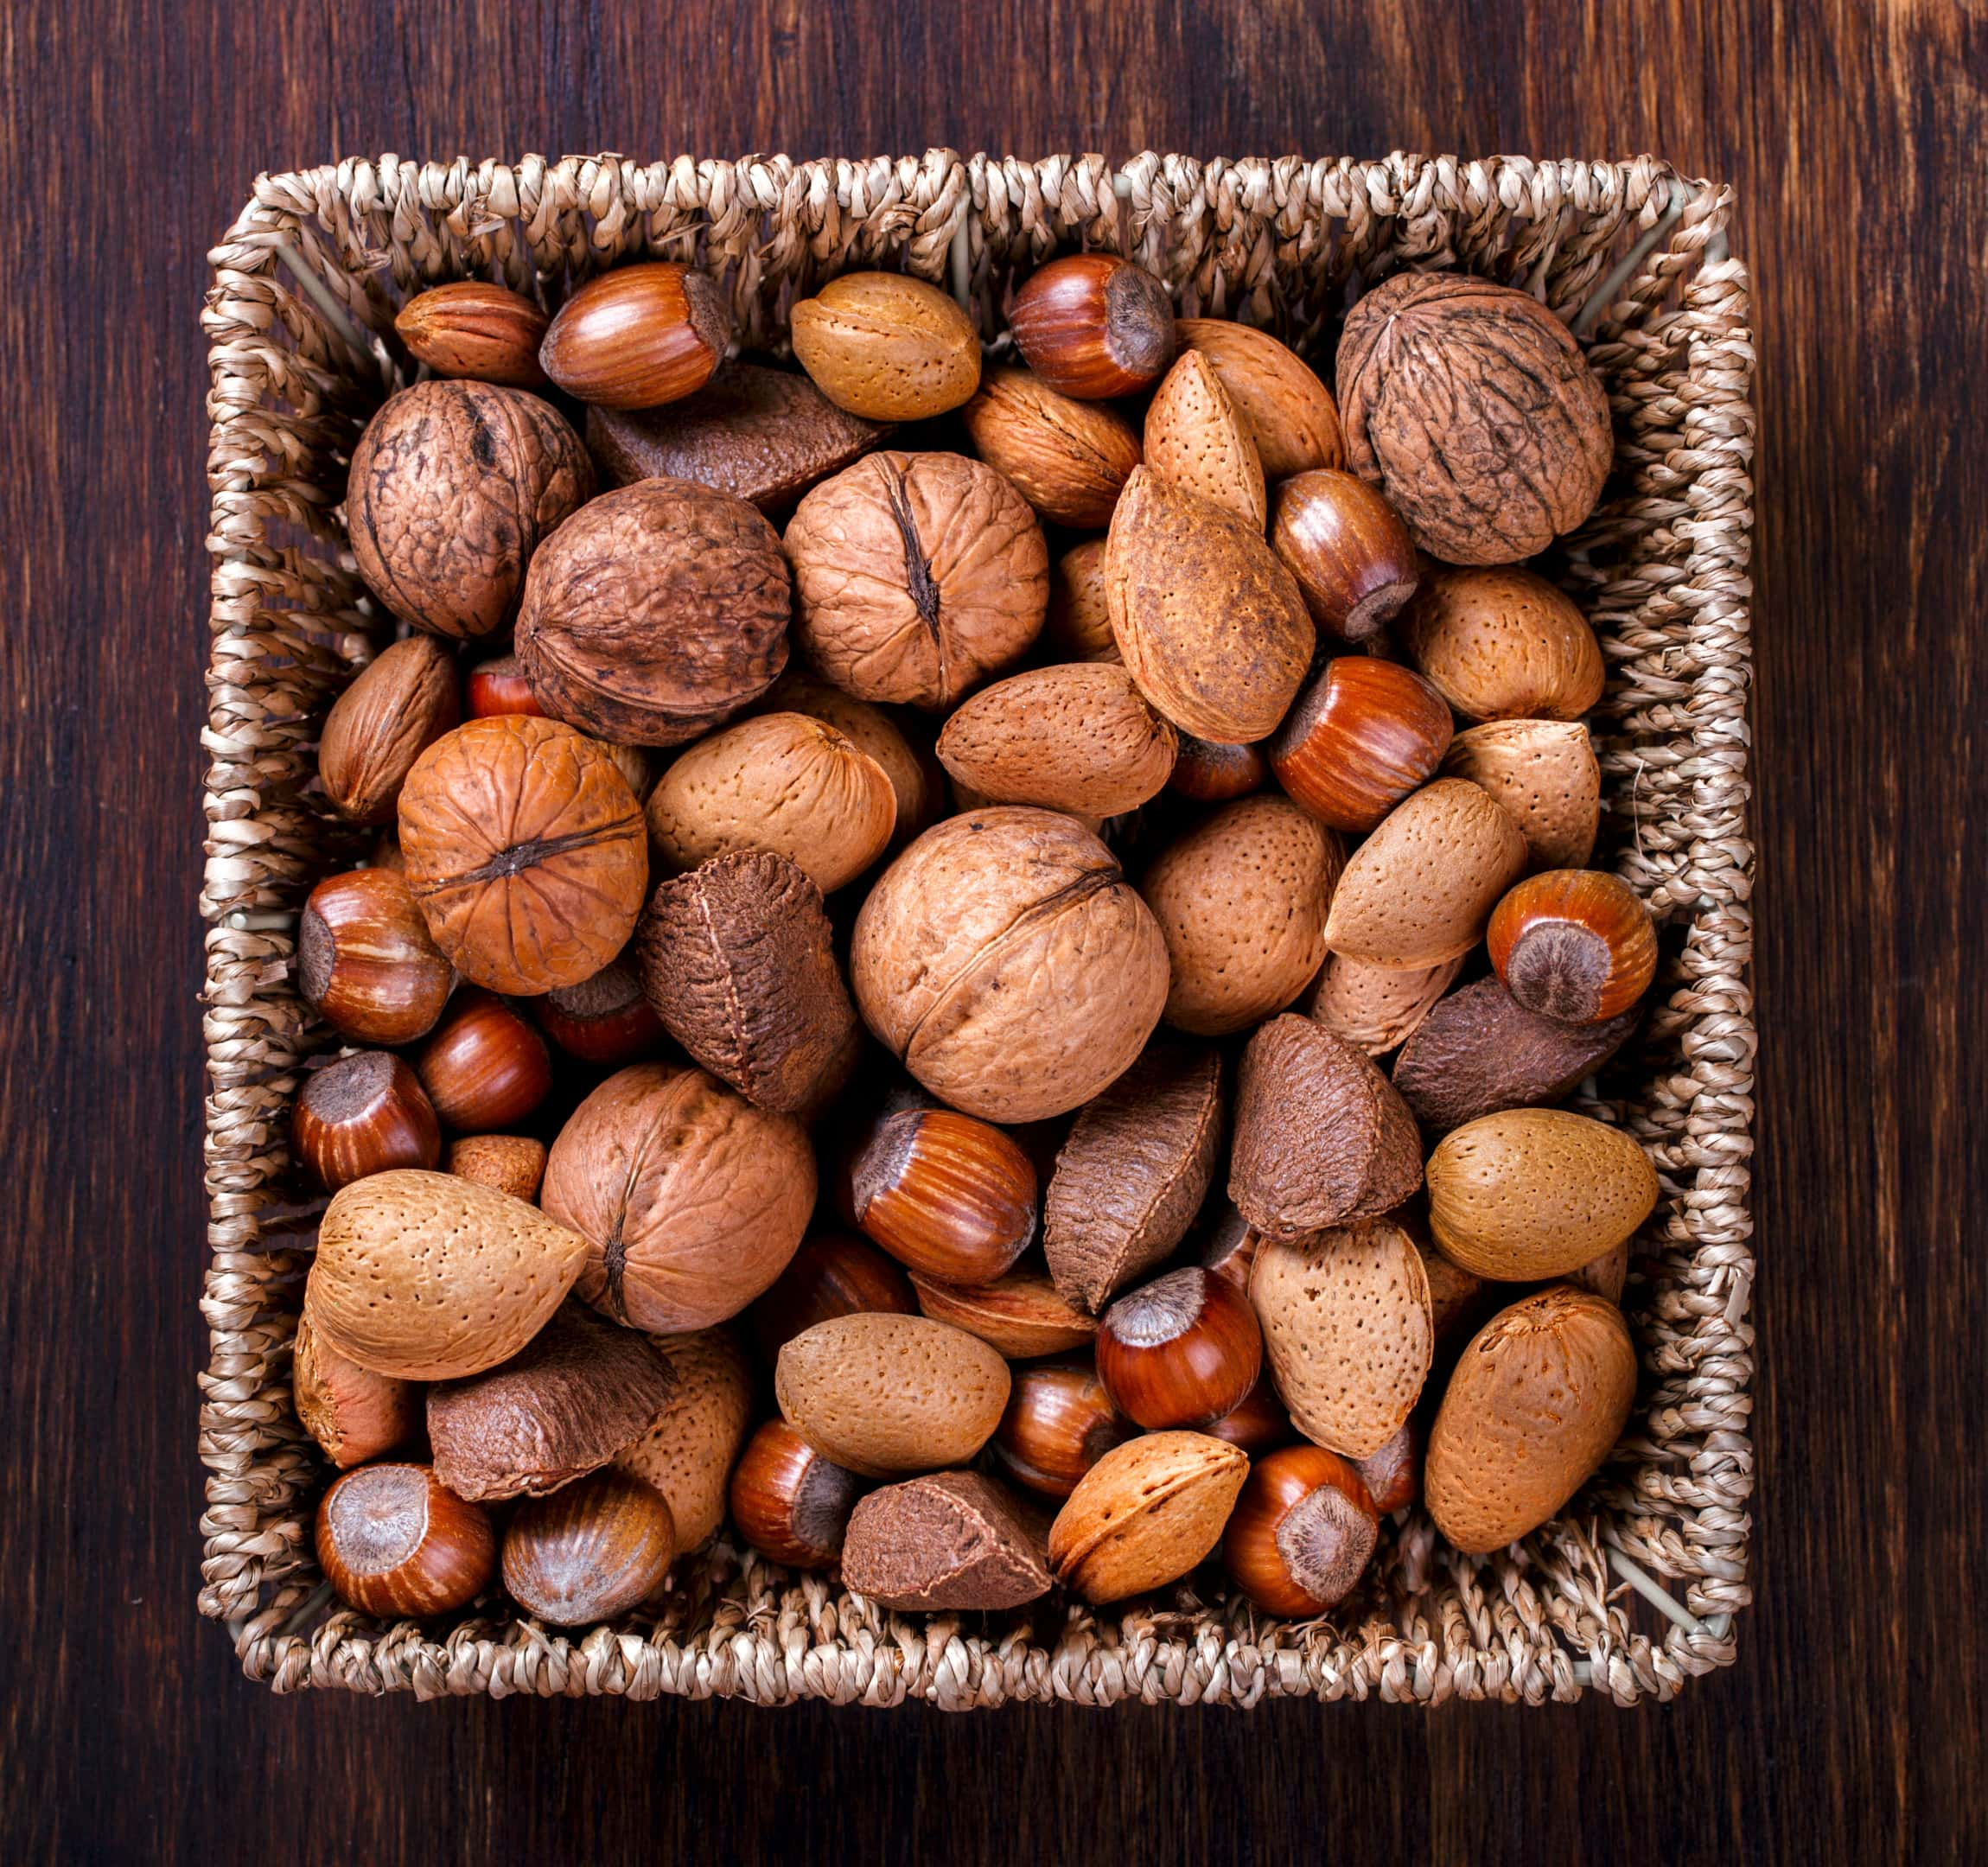 Mixed nuts basket, walnuts and brazil nuts.